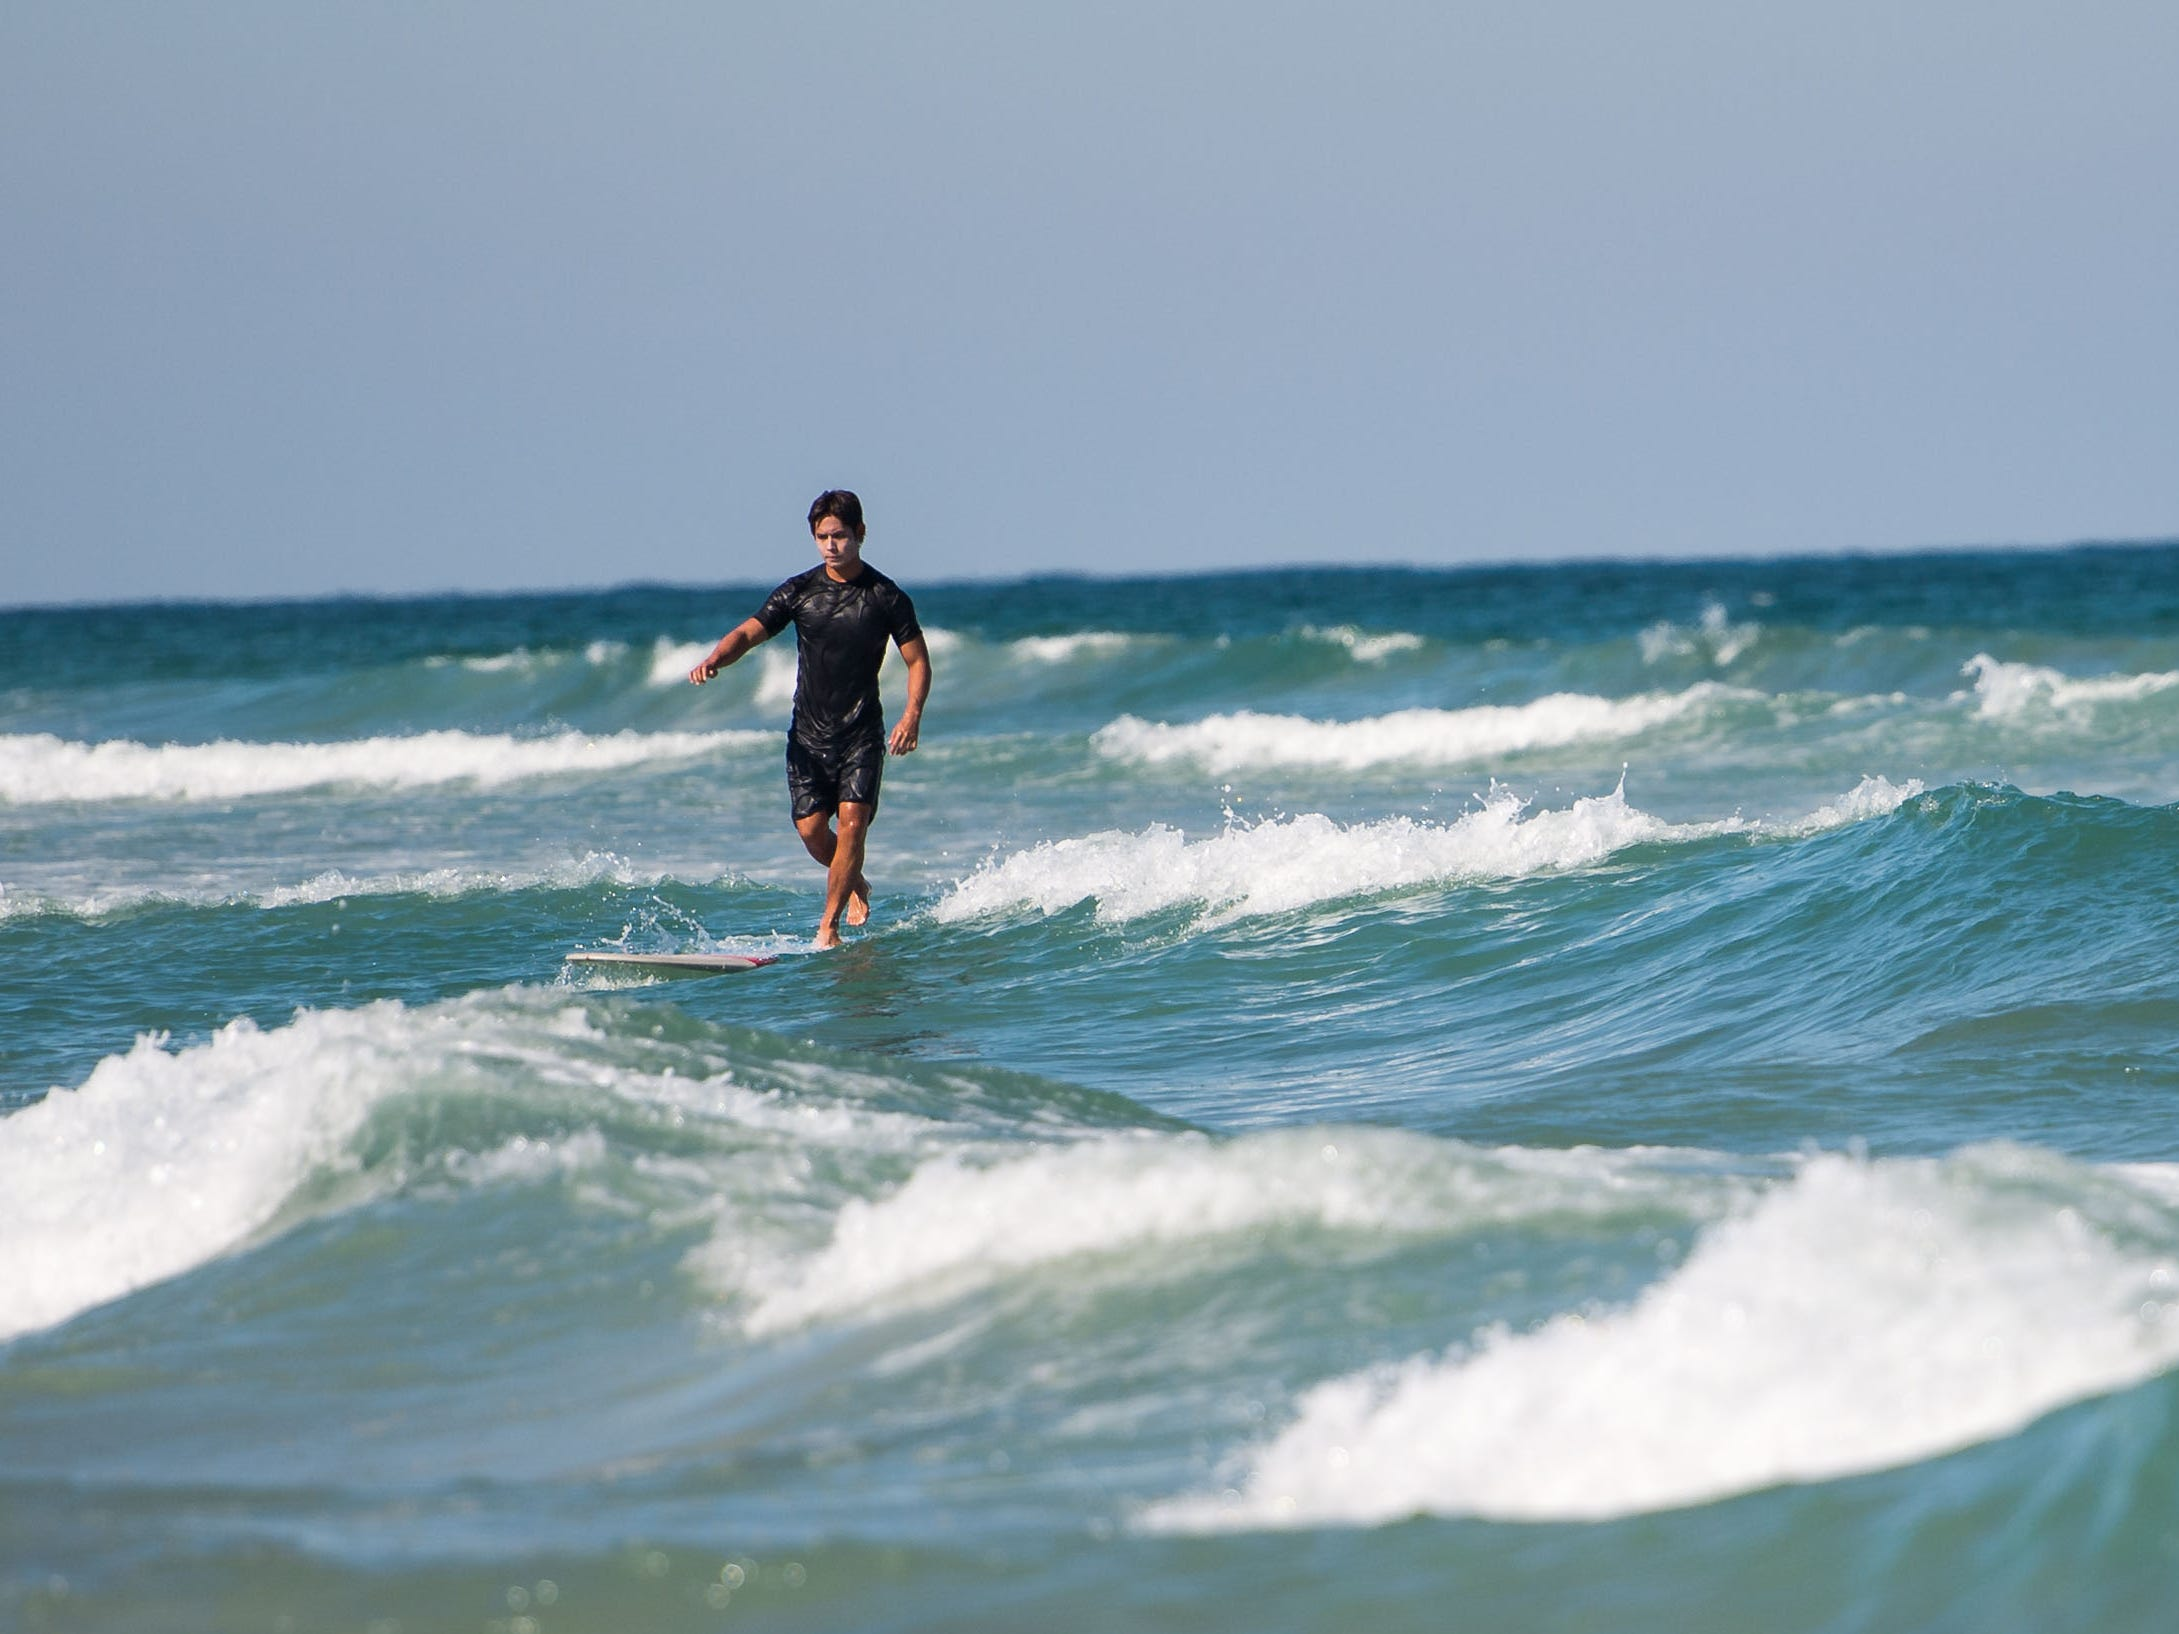 Surfers were out enjoying the waves at Fort Pierce Inlet State Park on Monday, Oct. 29, 2018, while other beaches on North Hutchinson Island were in various stages of being re-opened after a cleanup of dead fish due to red tide in St. Lucie County.